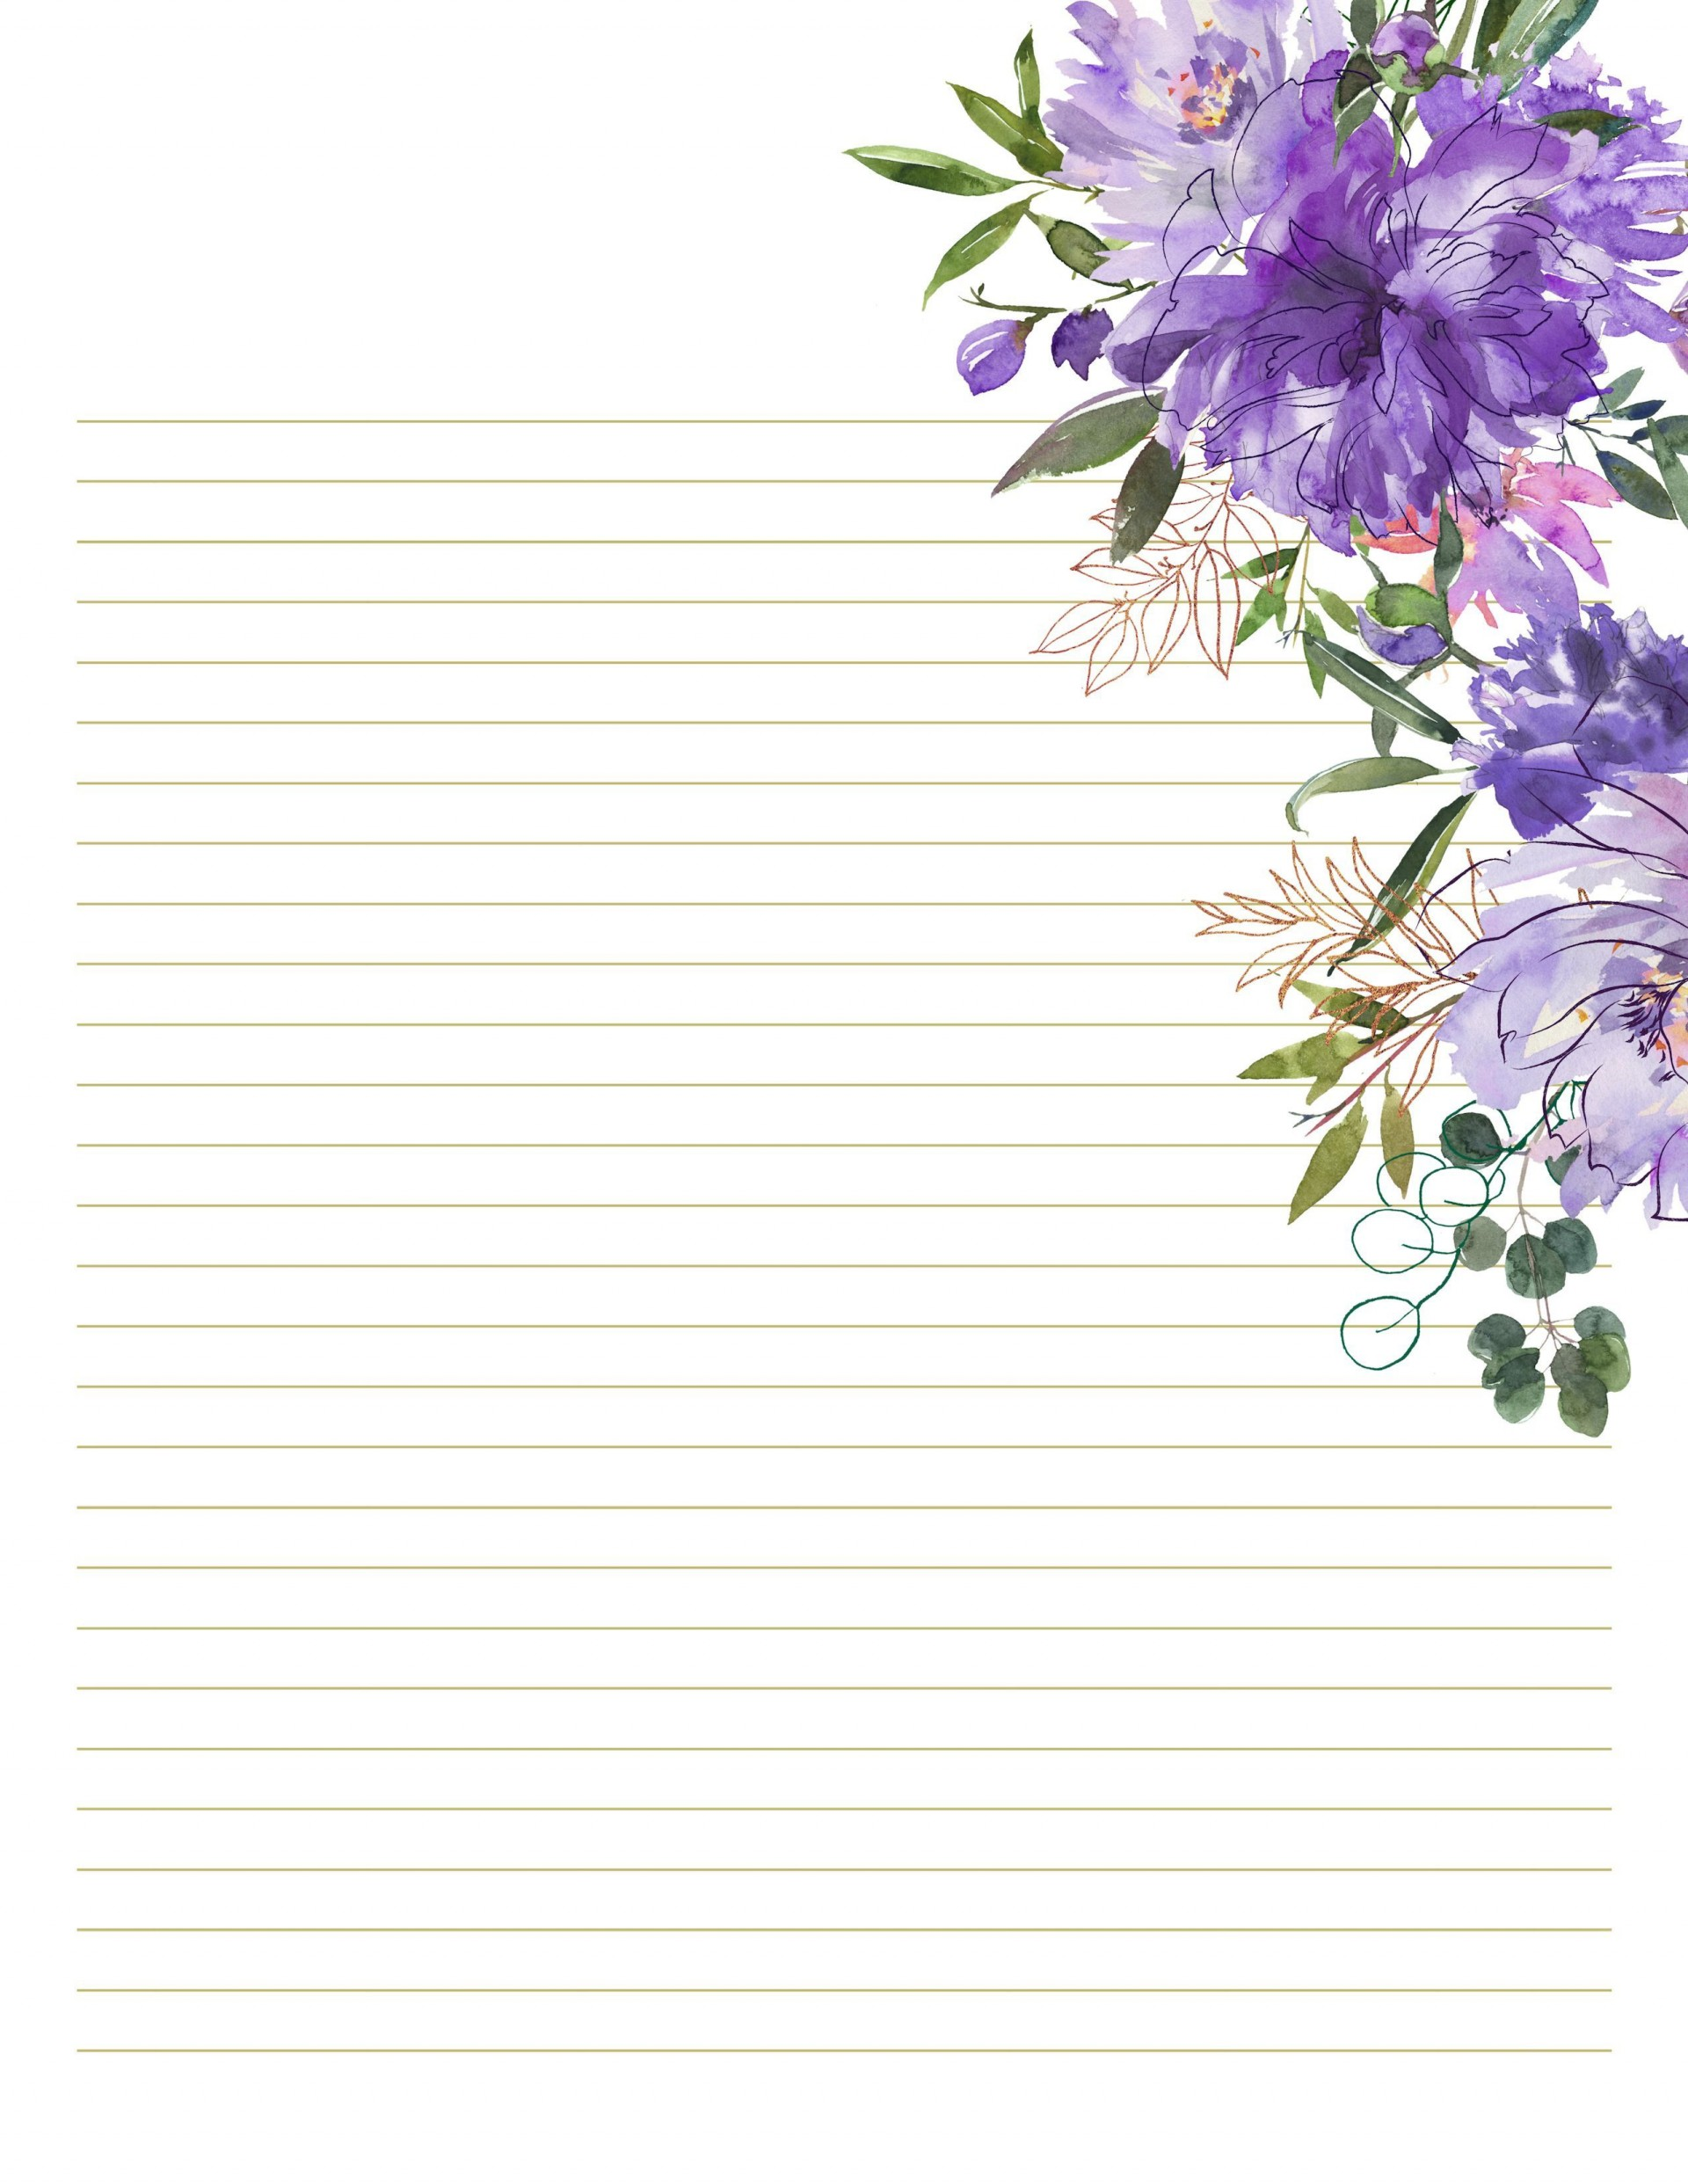 003 Formidable Free Printable Stationery Paper Template Photo  Templates1920